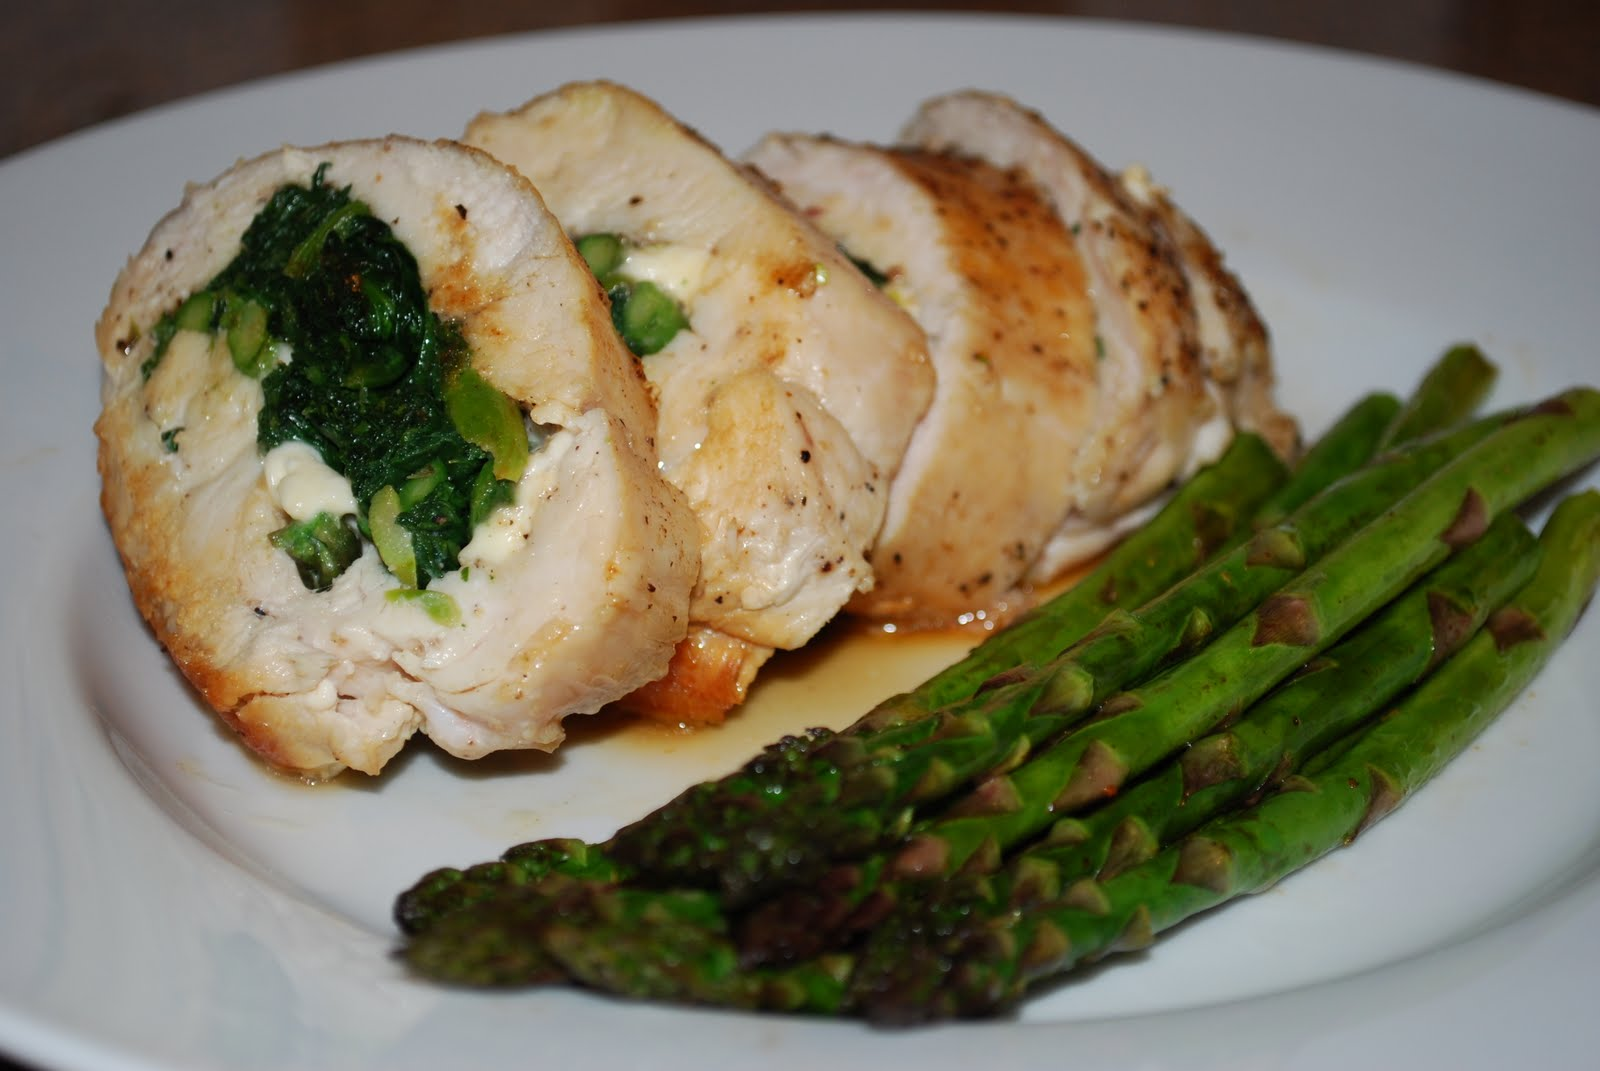 Jen's Gone Paleo: Stuffed Chicken Breast w/Spinach and Asparagus